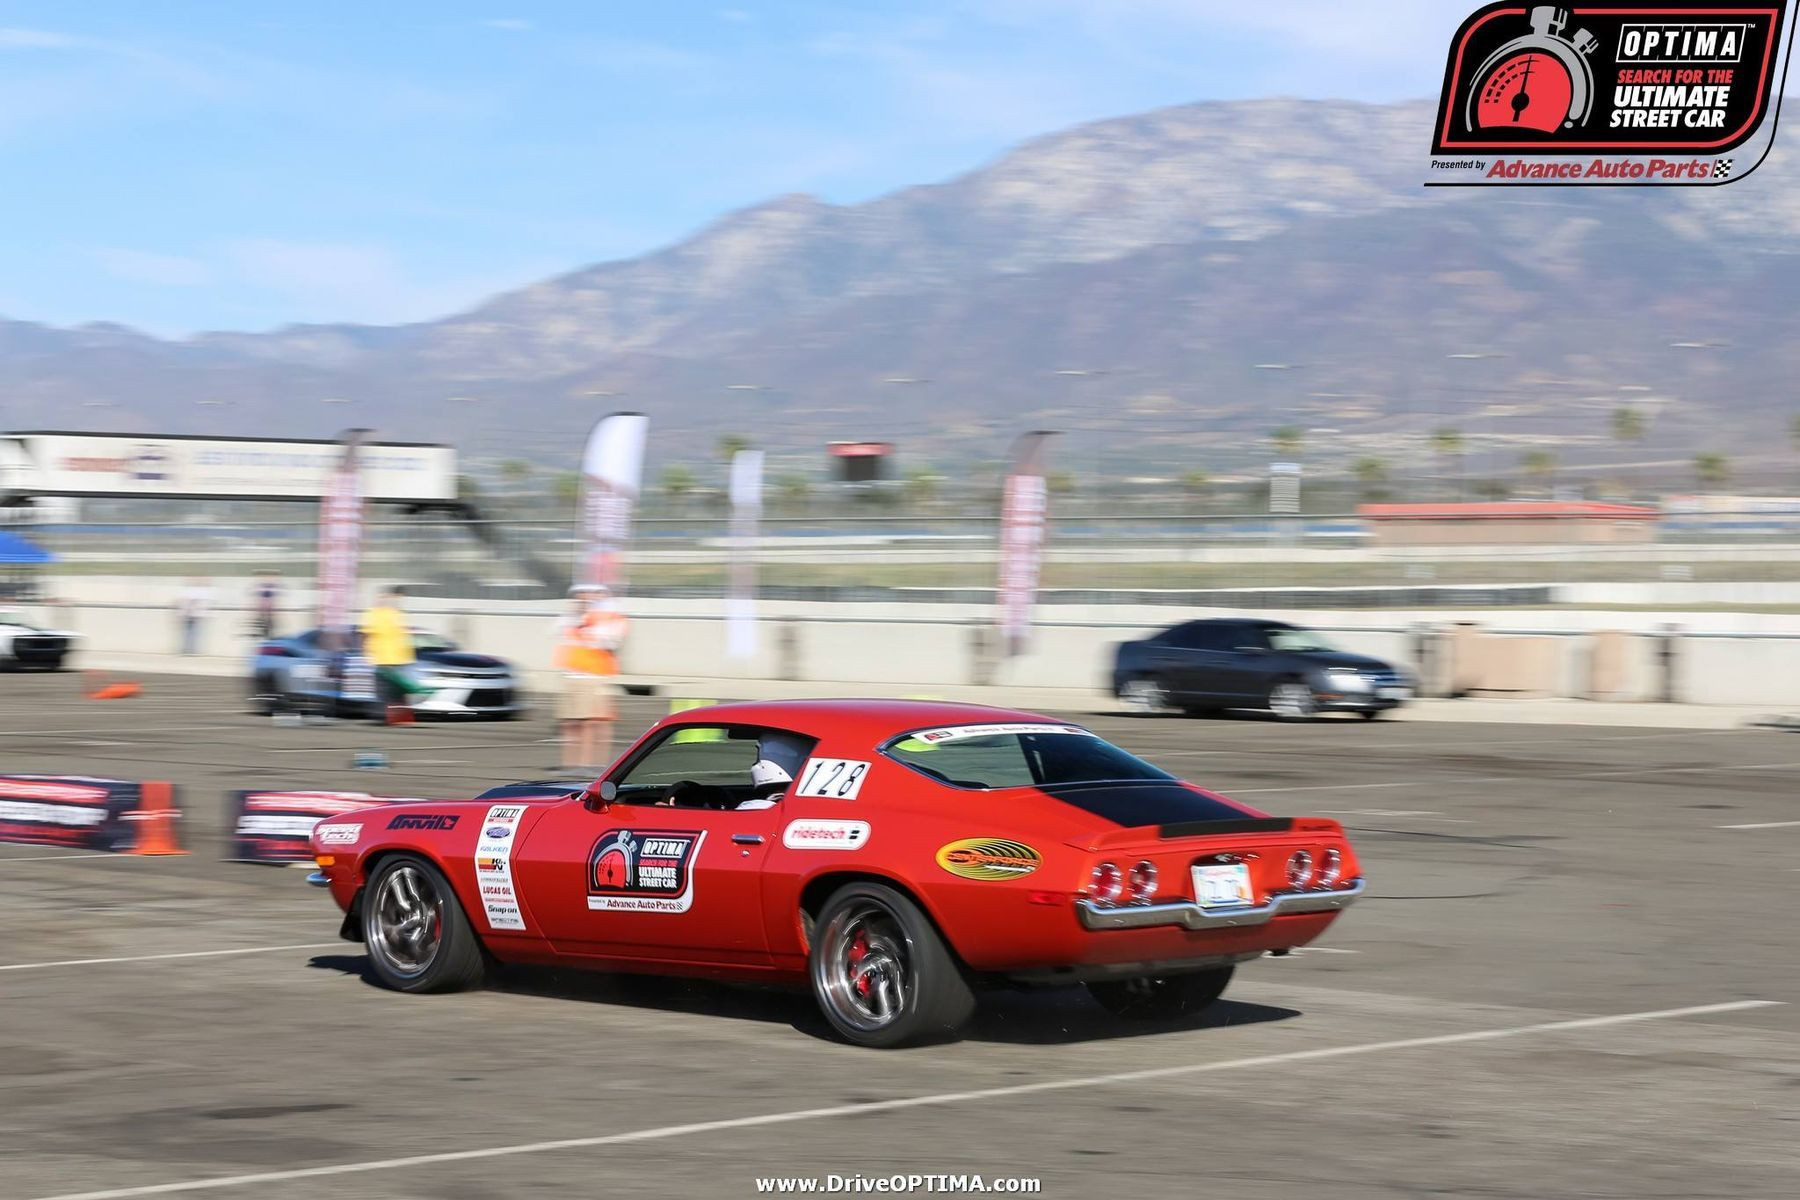 1970 Chevrolet Camaro | Nick Relampagos Earns 2016 OUSCI Invite with 1970 Camaro on Forgeline VX3C Wheels